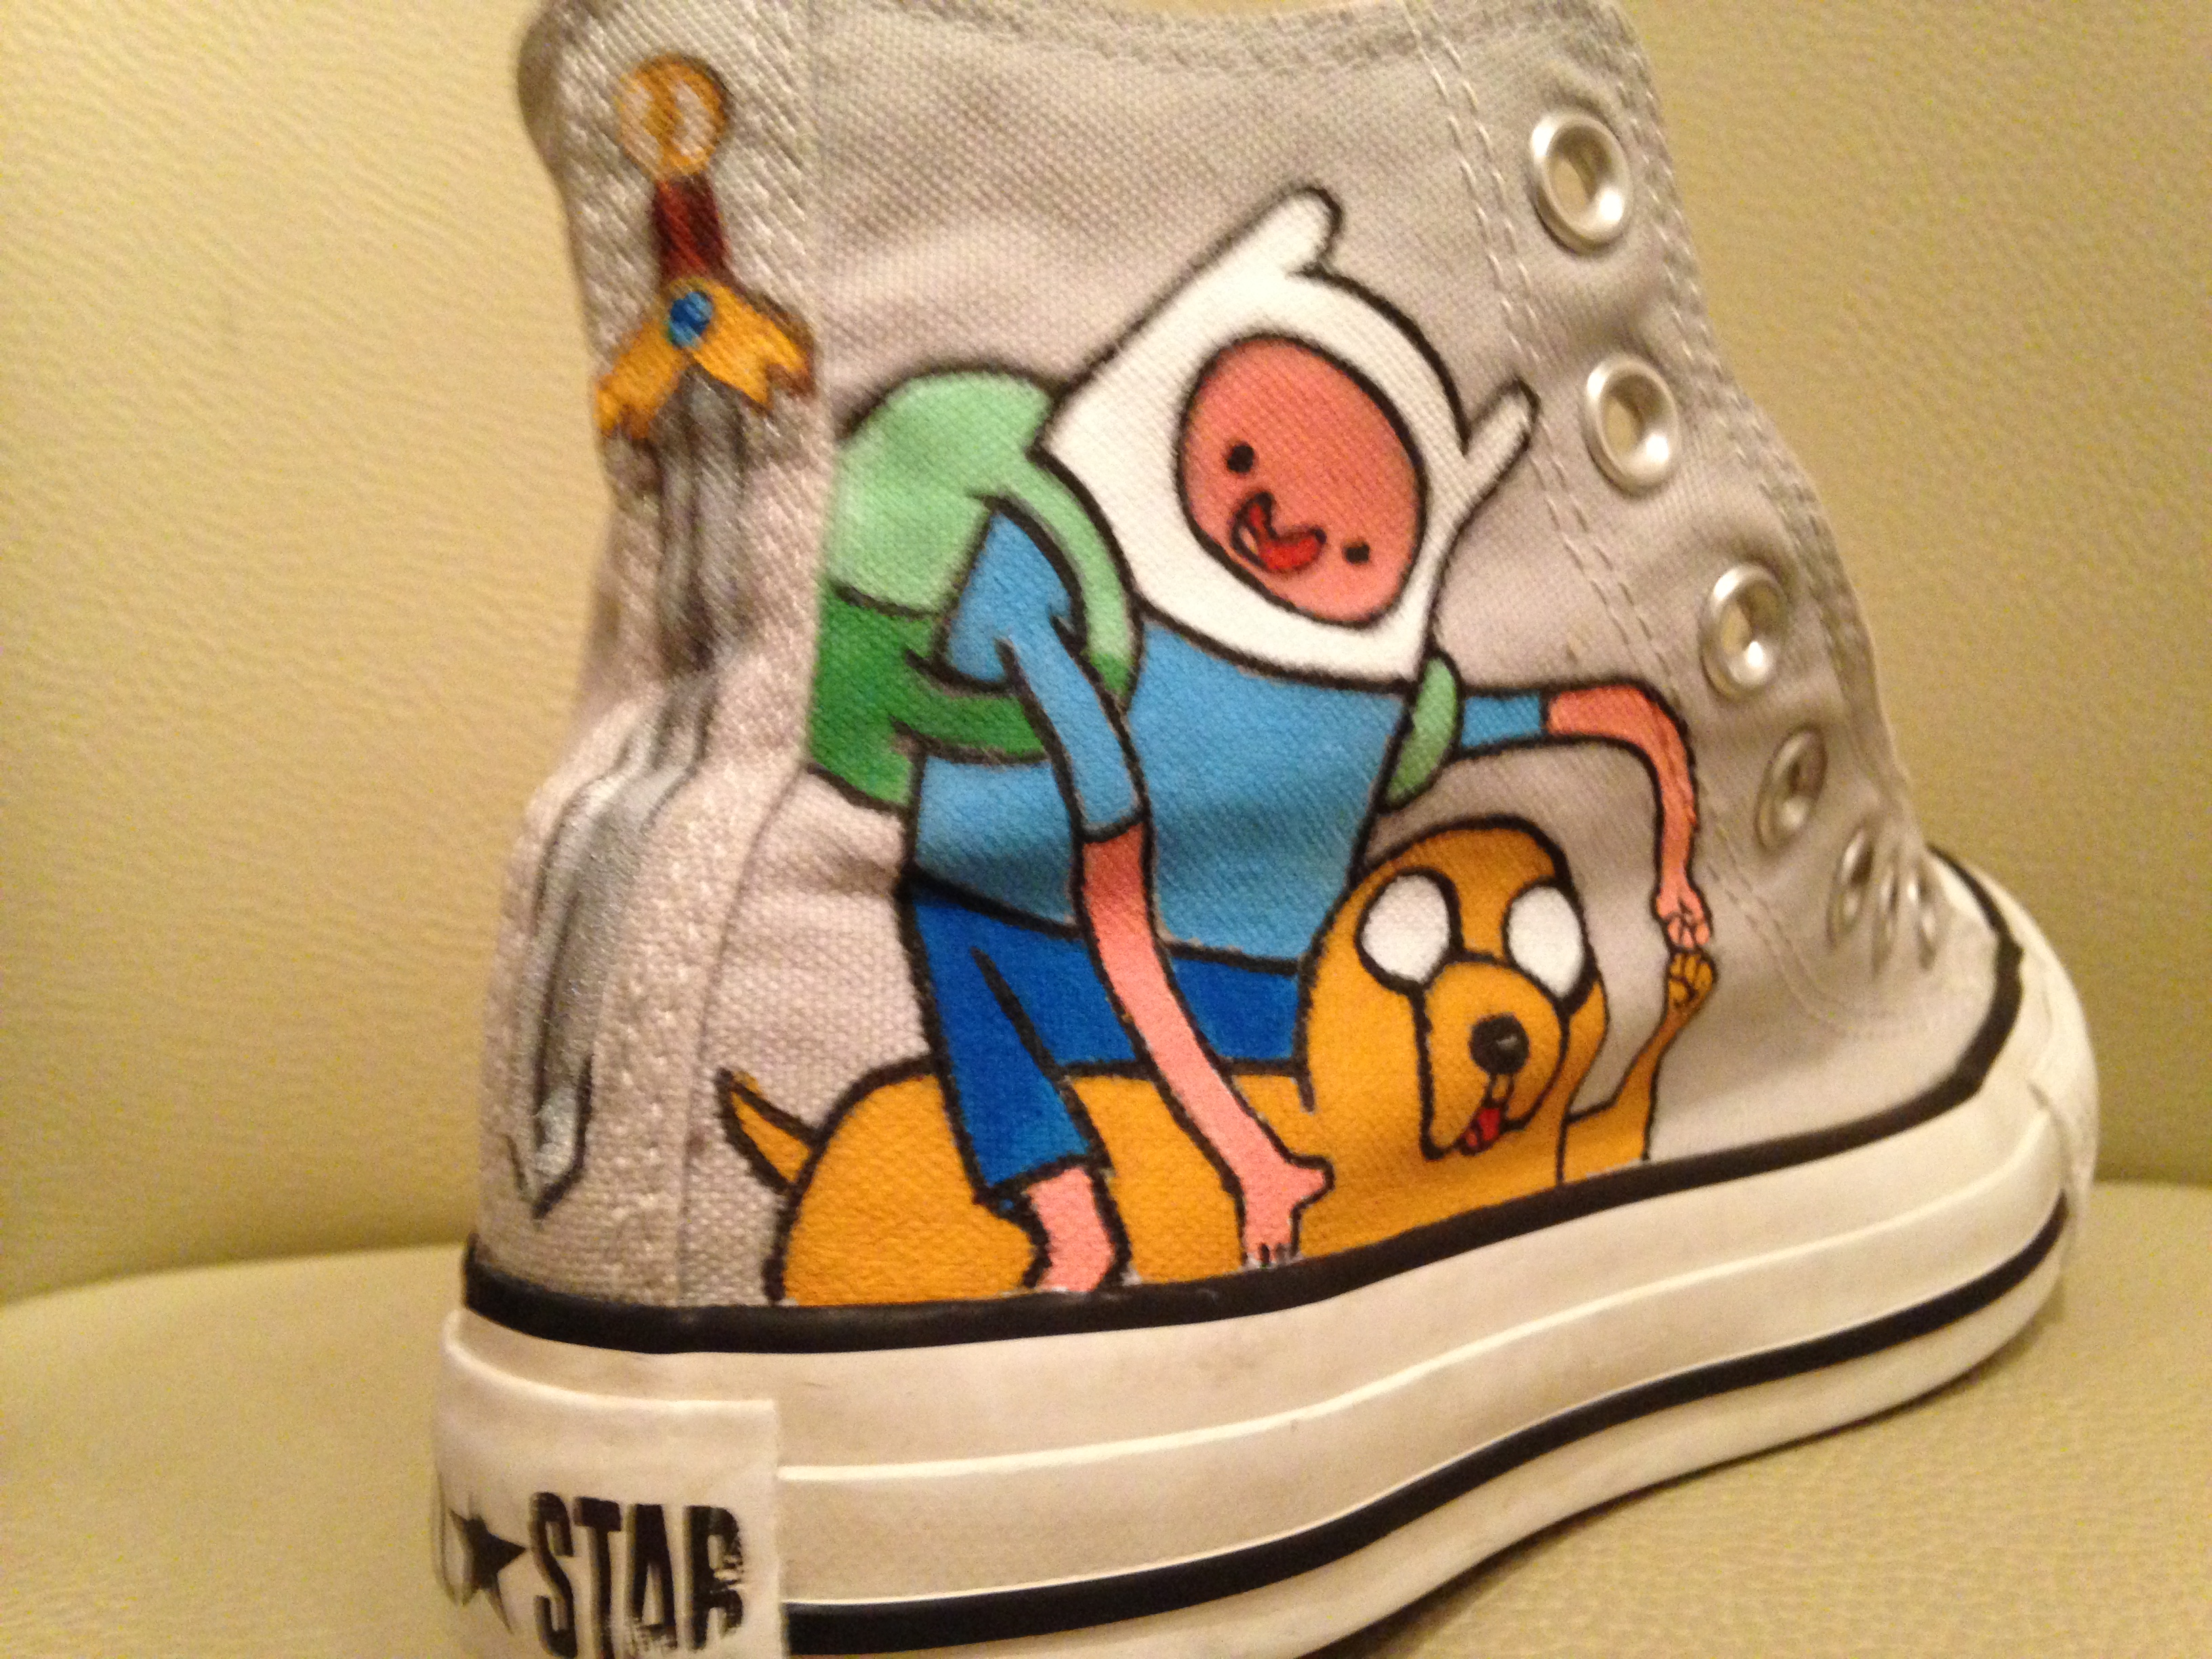 Adventure time trainers